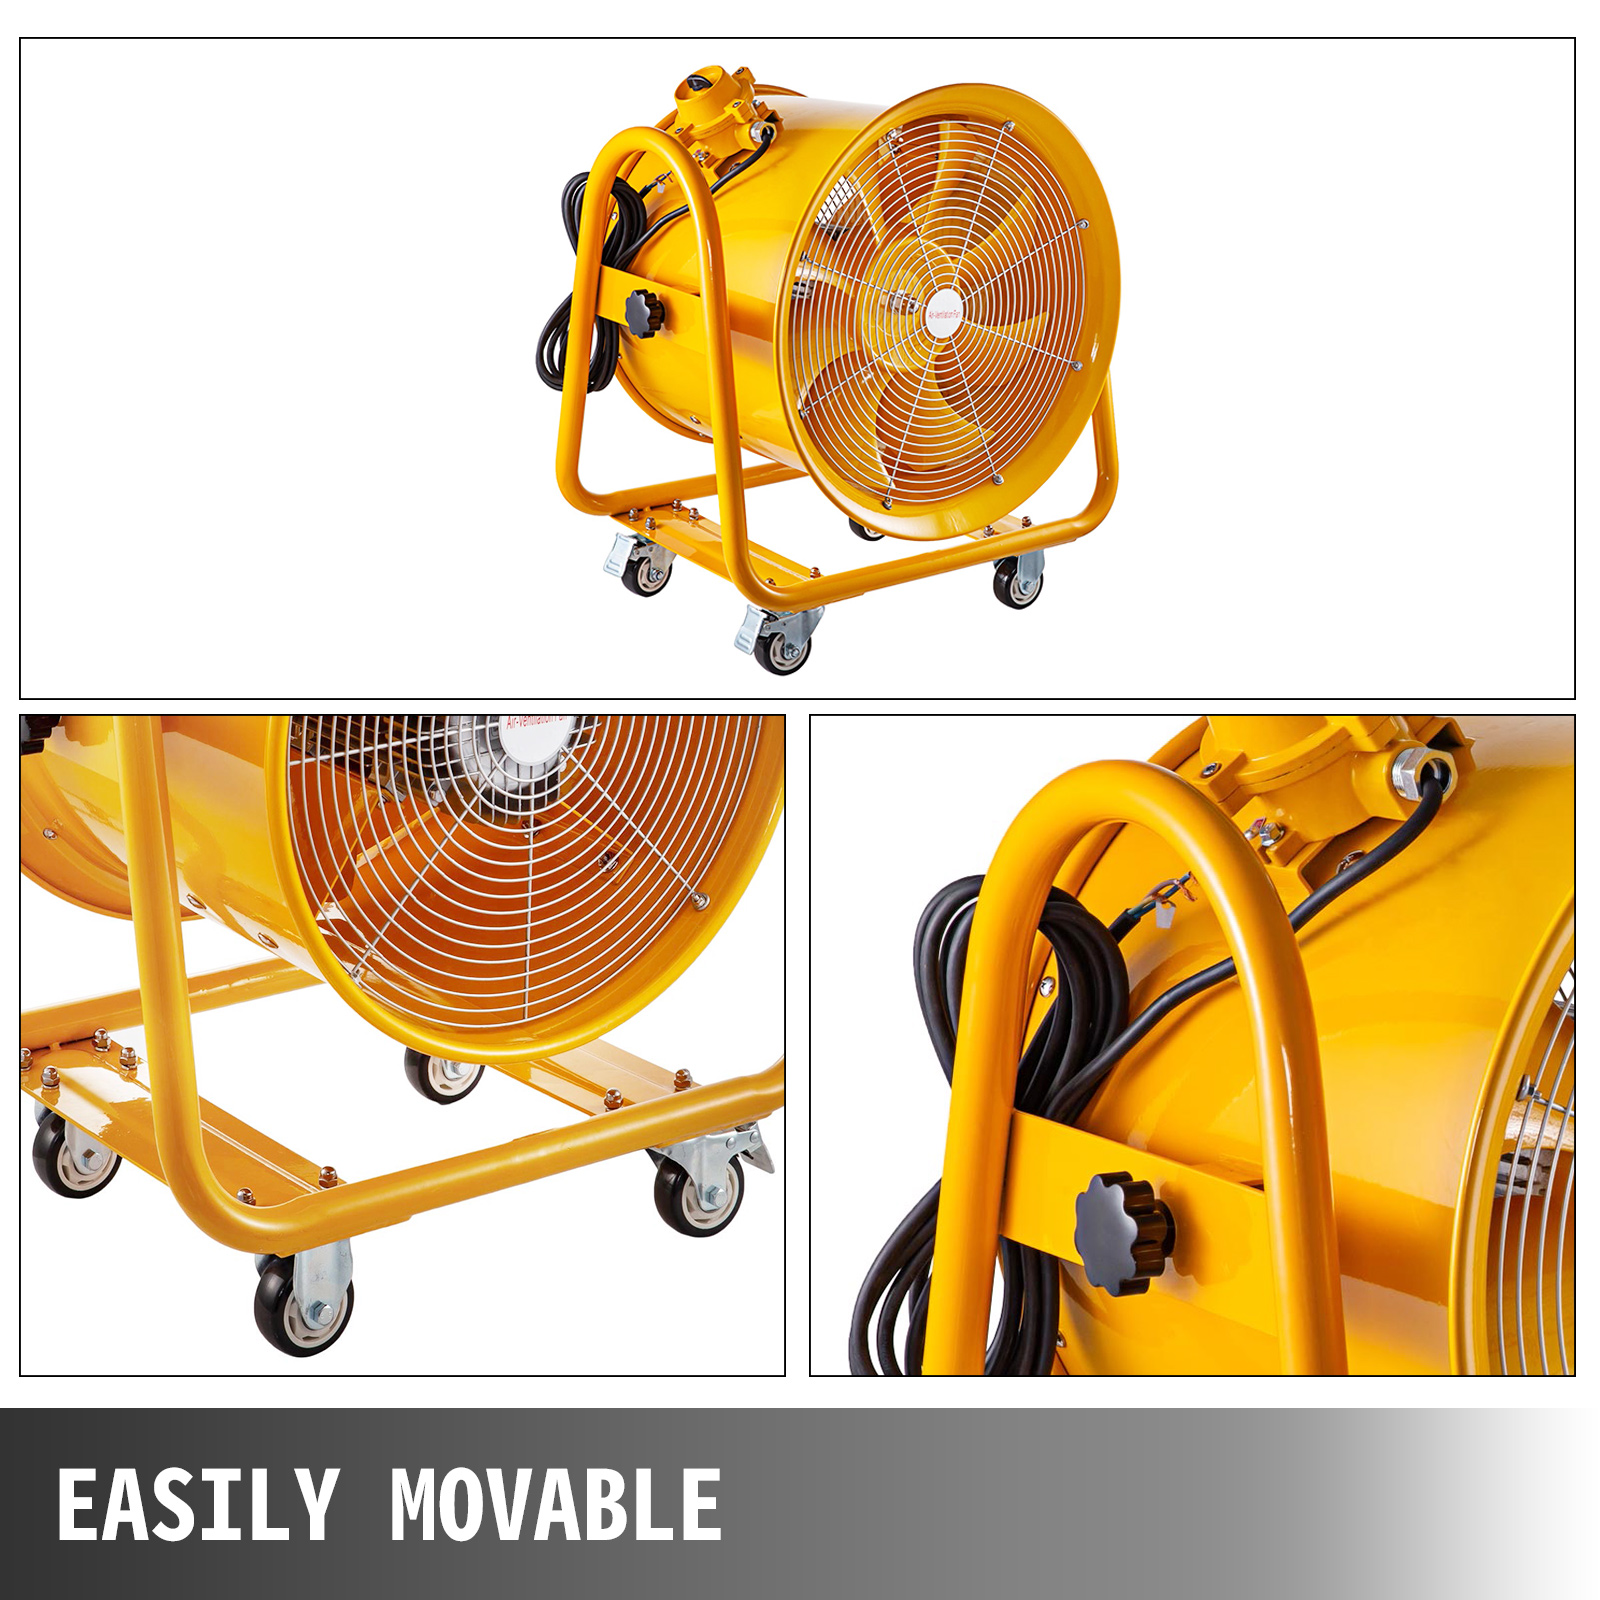 Atex Rated Ventilators, Explosion Proof Fan, 20 Inch ...